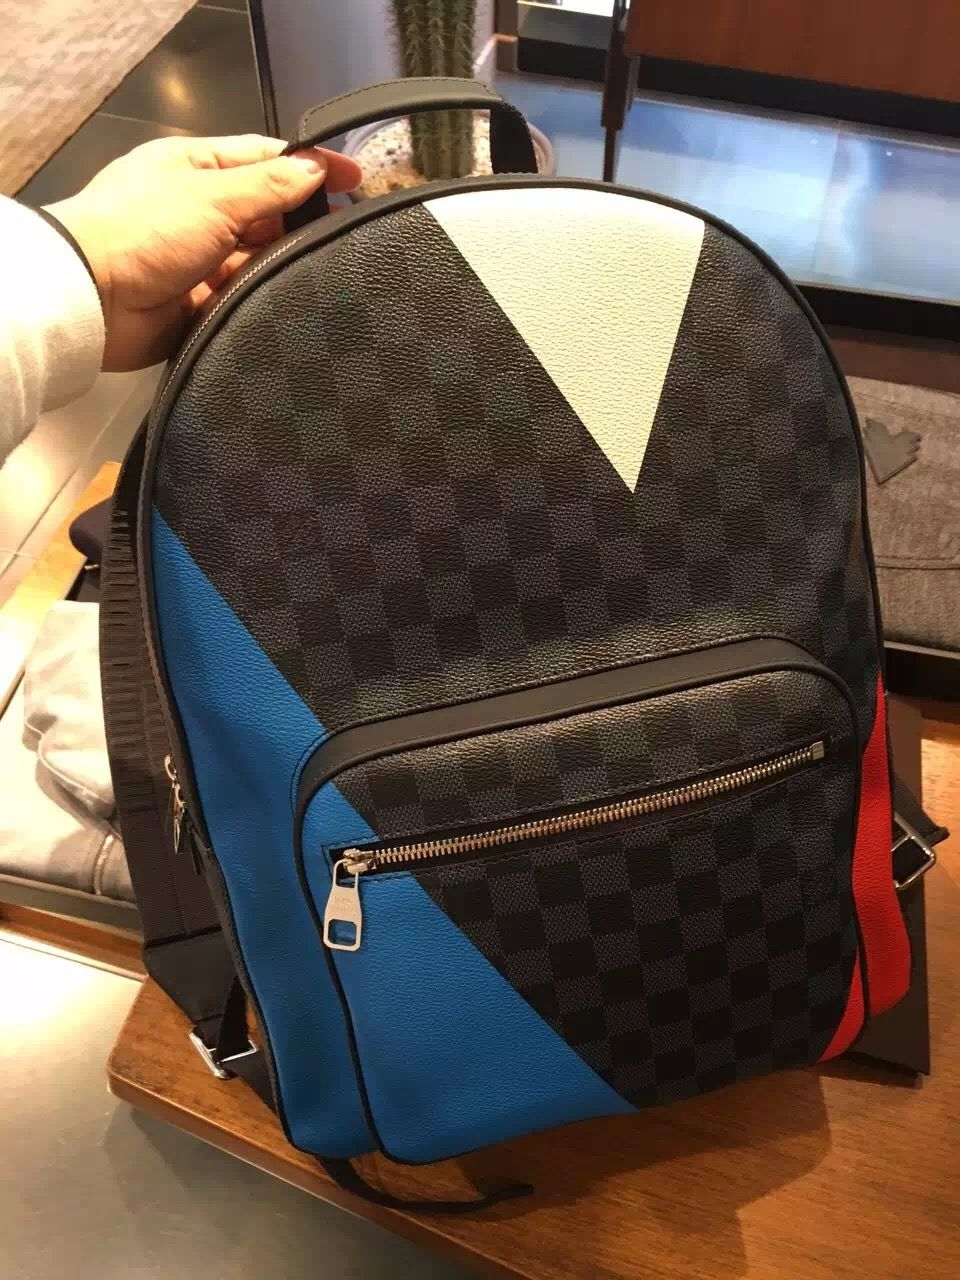 0cdfa9b4a9d5  americacup  americascup  louisvuittonbackpack  backpack  lv  purses   handbag www.luxvipshopper.com Louis Vuitton America s Cup Josh Backpack  N41612